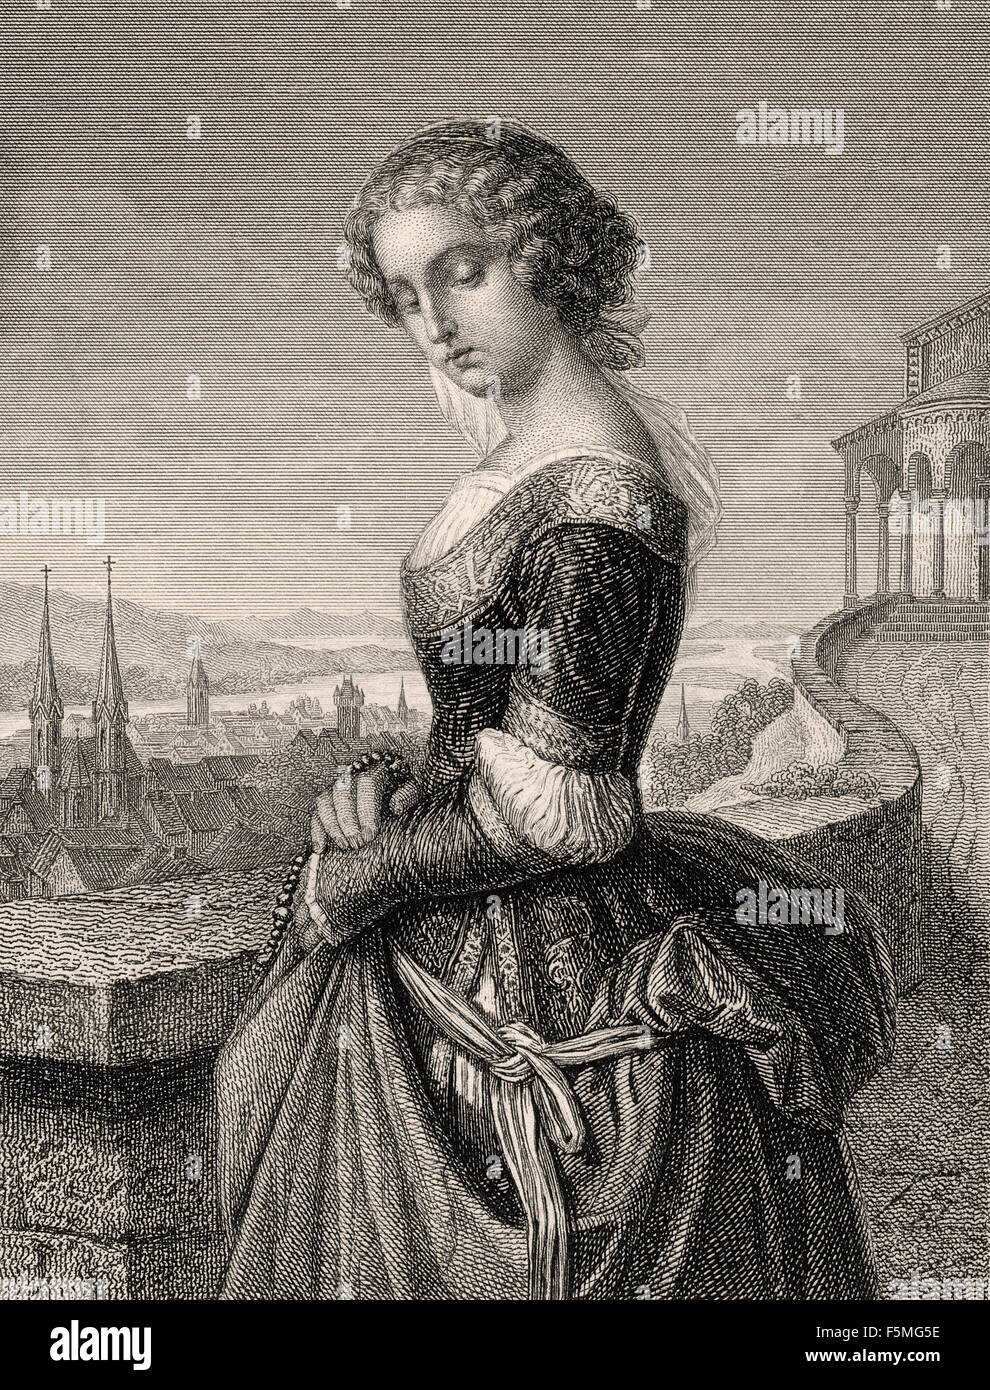 Margarete, known as Gretchen, in the tragedy Faust written by Johann Wolfgang von Goethe, - Stock Image